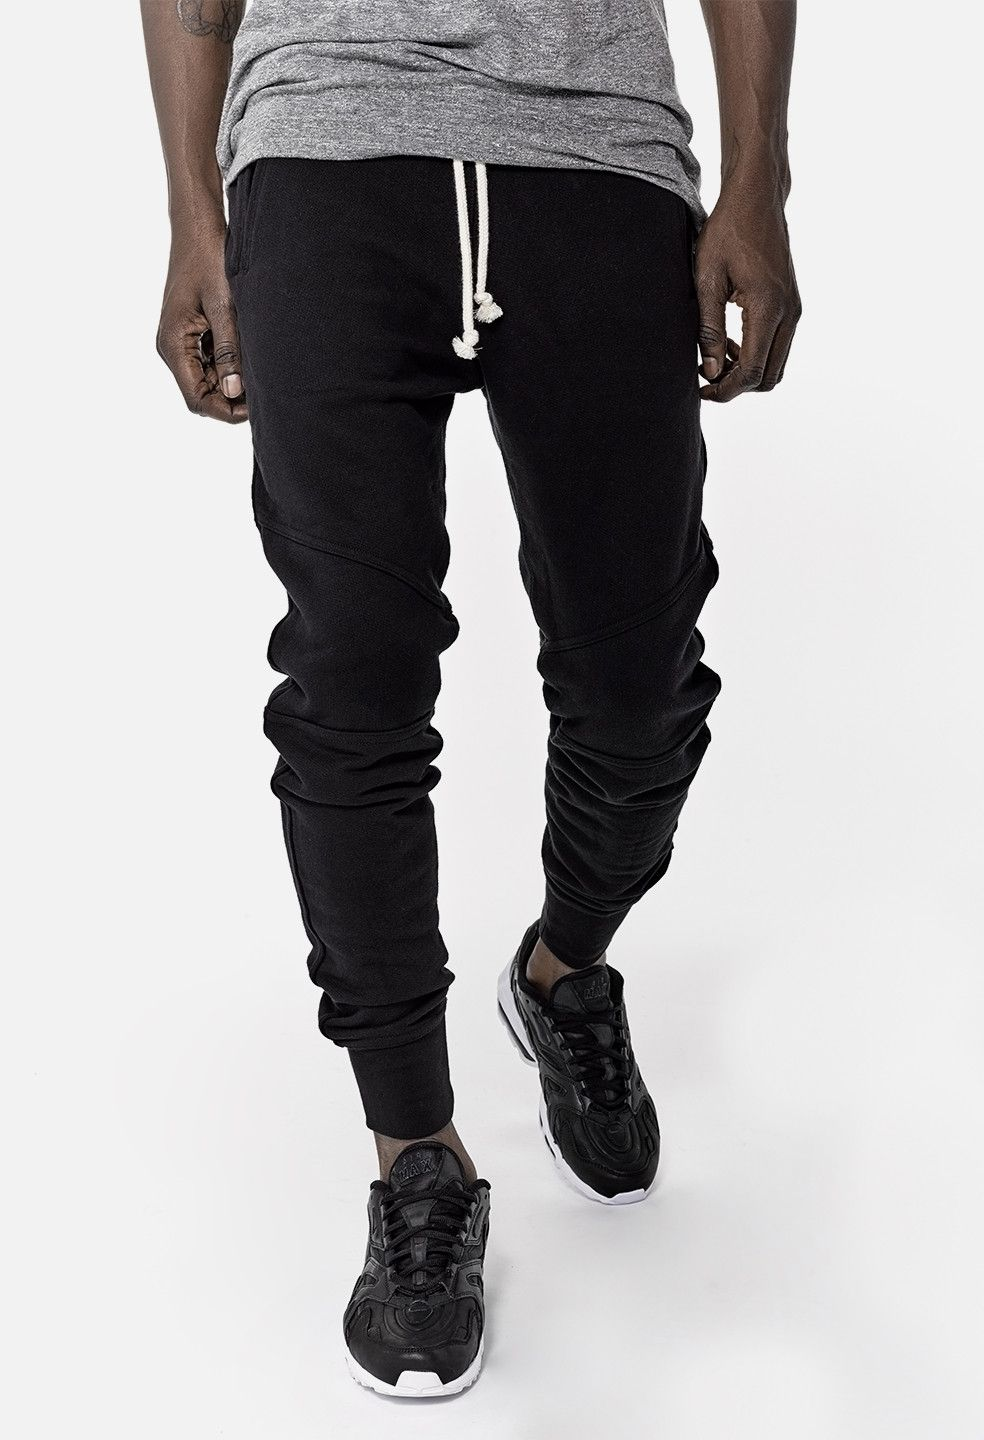 Escobar Sweatpants   Black - JOHN ELLIOTT  8d8545485bf5f